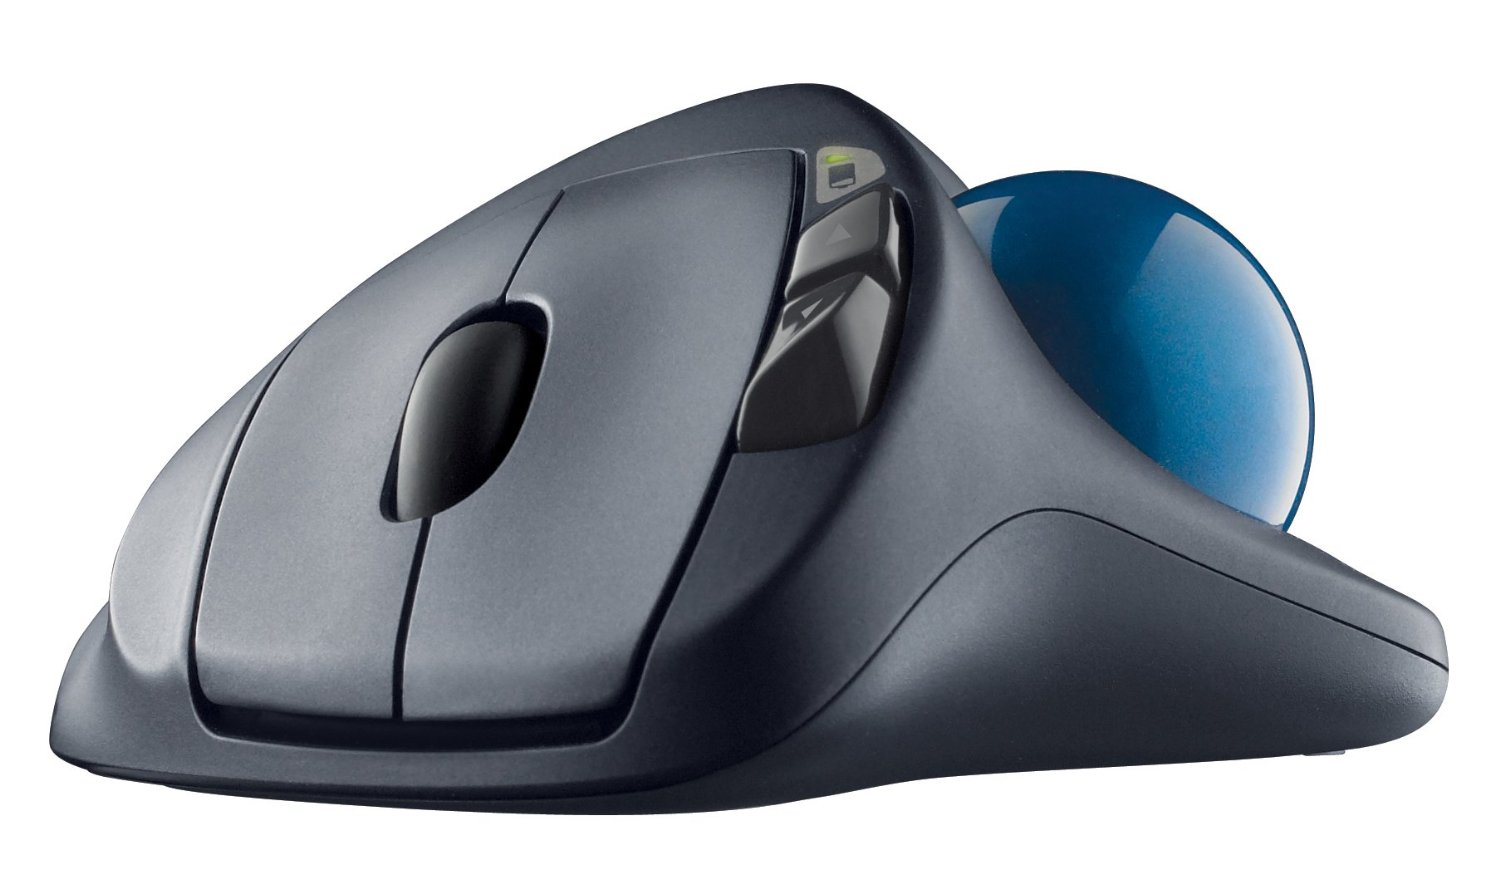 Difference between Trackball and Mouse